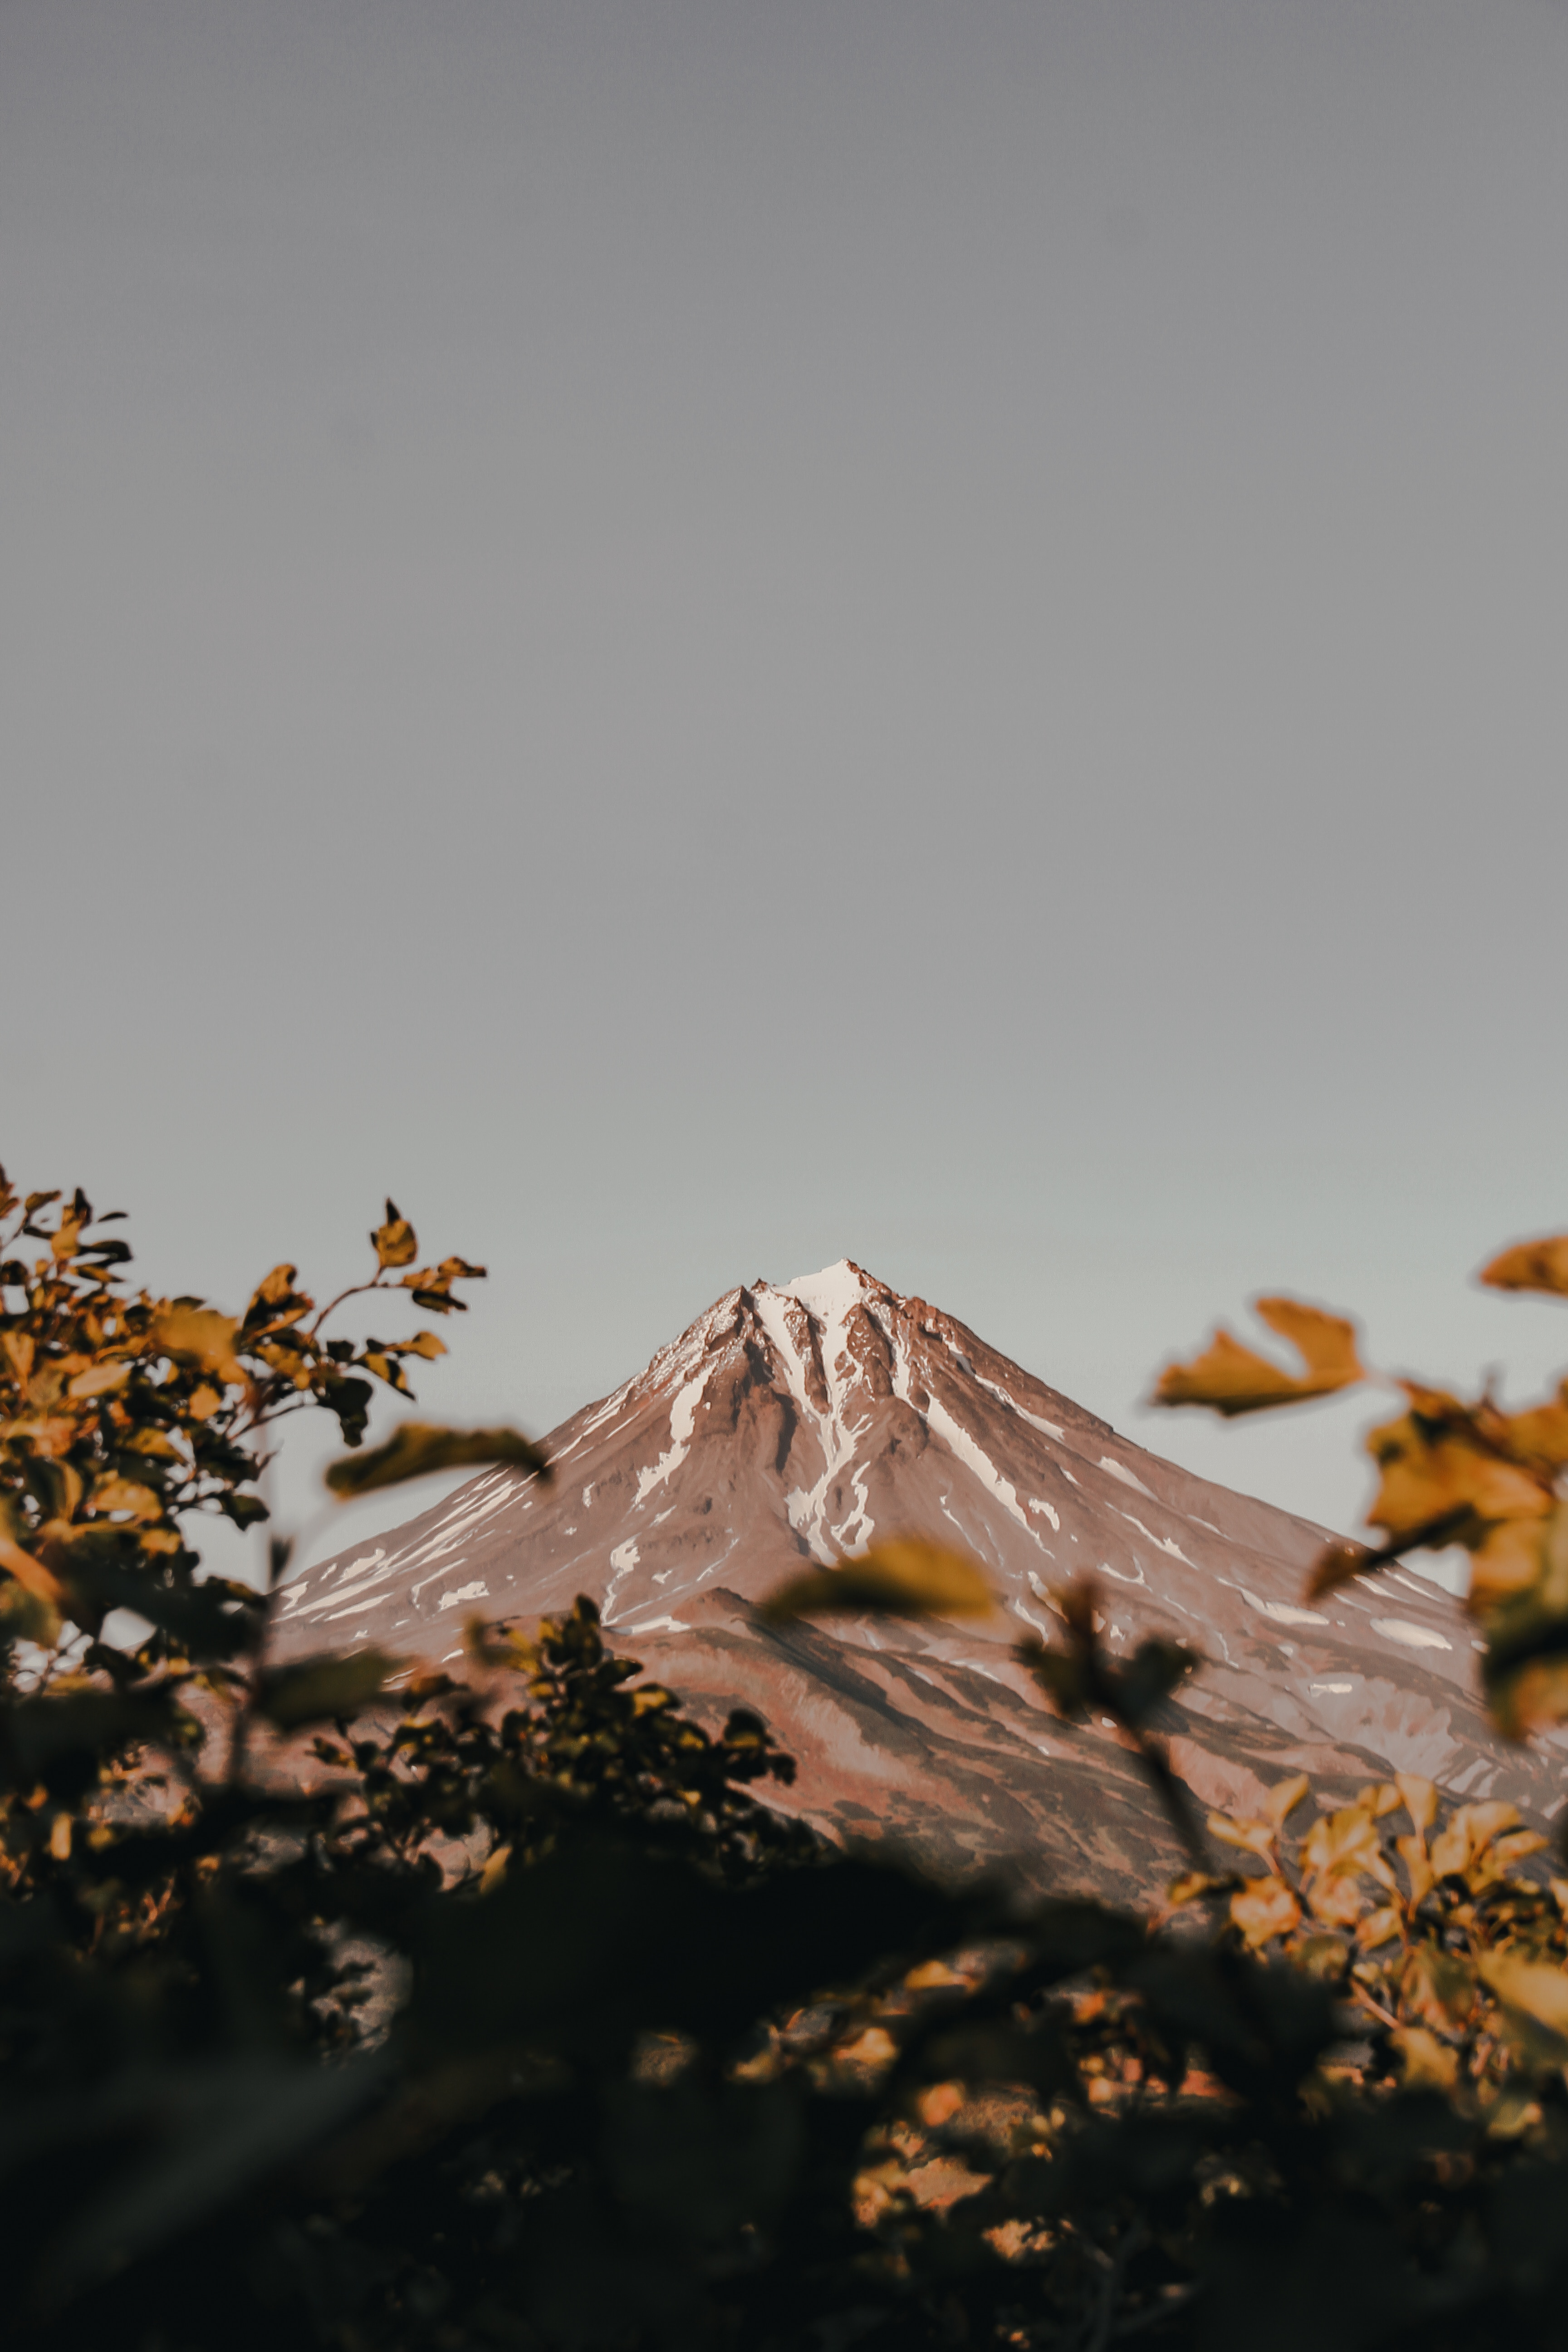 138980 download wallpaper Nature, Mountain, Vertex, Top, Volcano, Branches, Bush screensavers and pictures for free